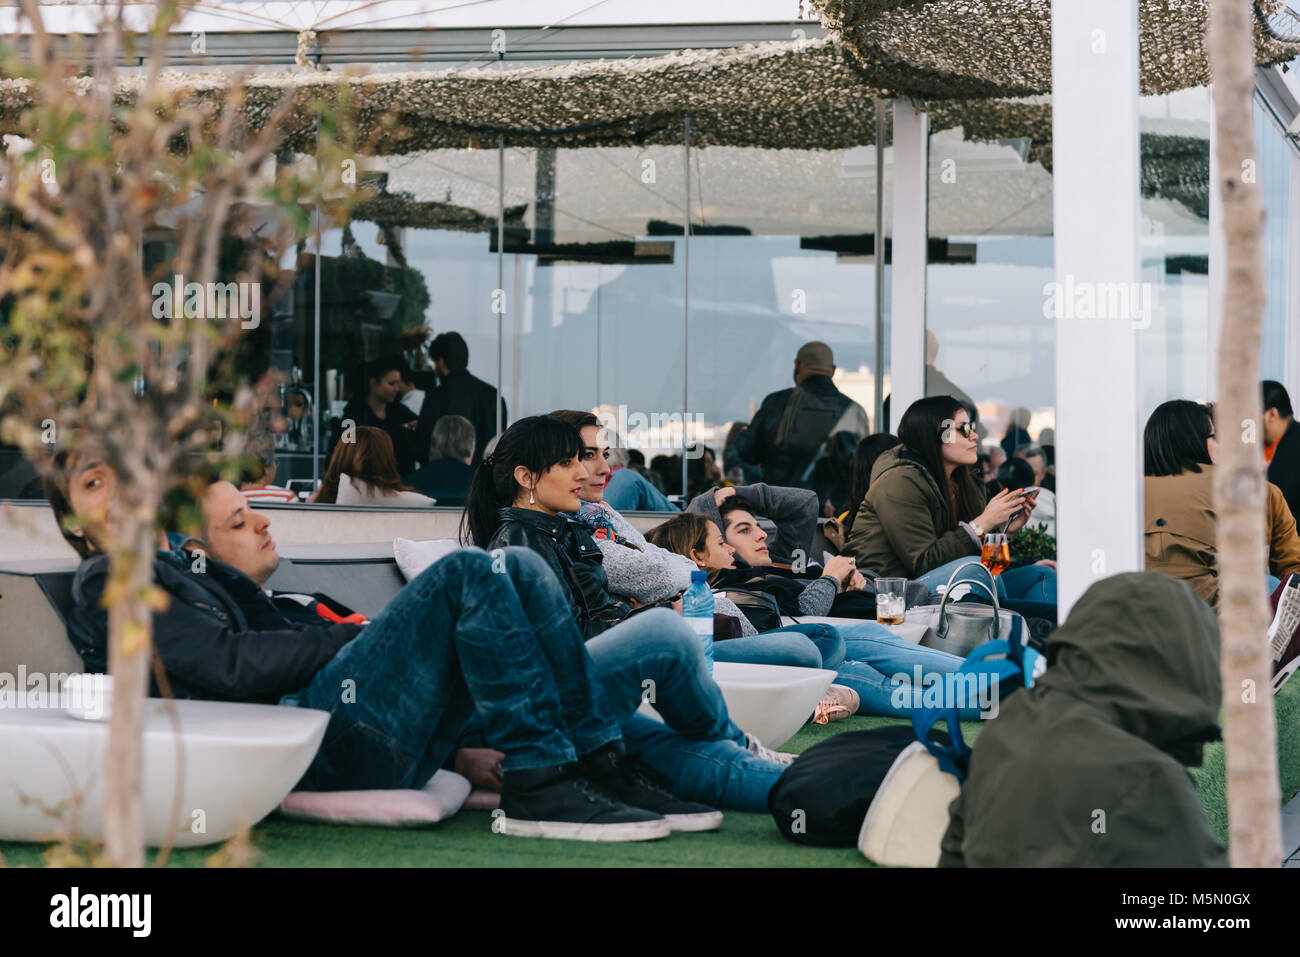 Madrid, Spain - November 3, 2017:  People enjoying at cafe on Circulo de Bellas Artes of Madrid rooftop at sunset. Stock Photo